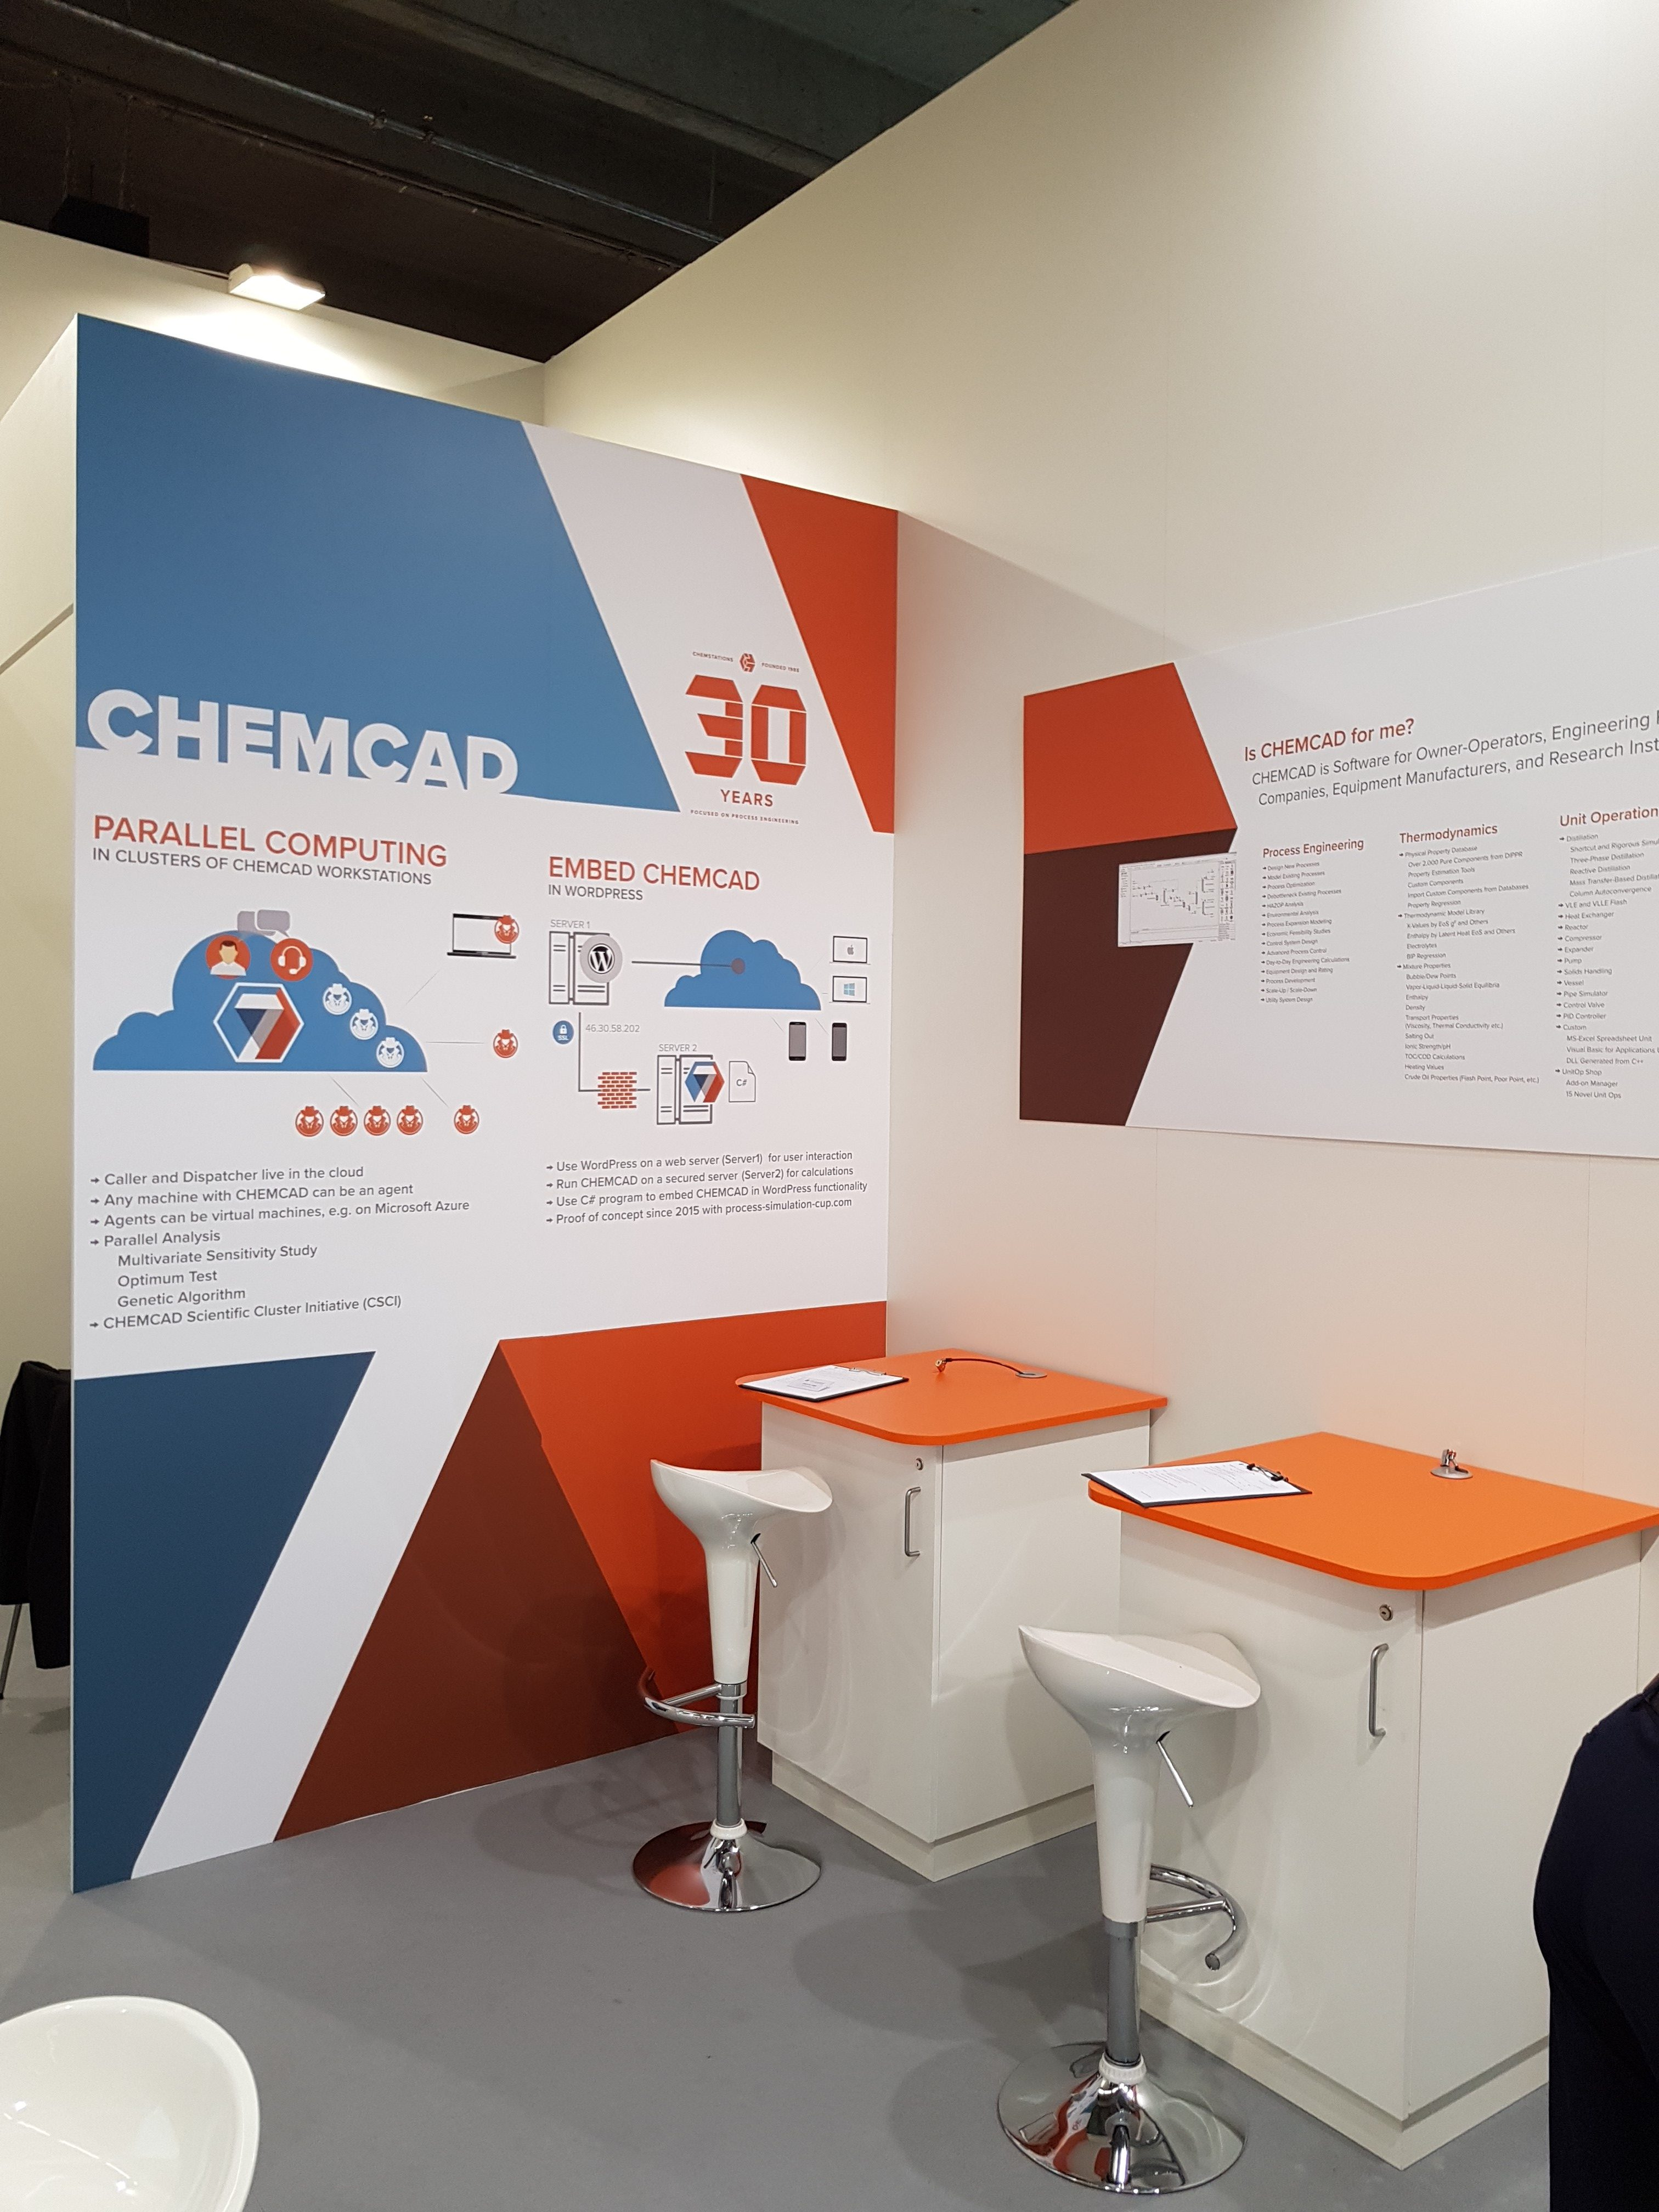 CHEMCAD is in the cloud - CC-API